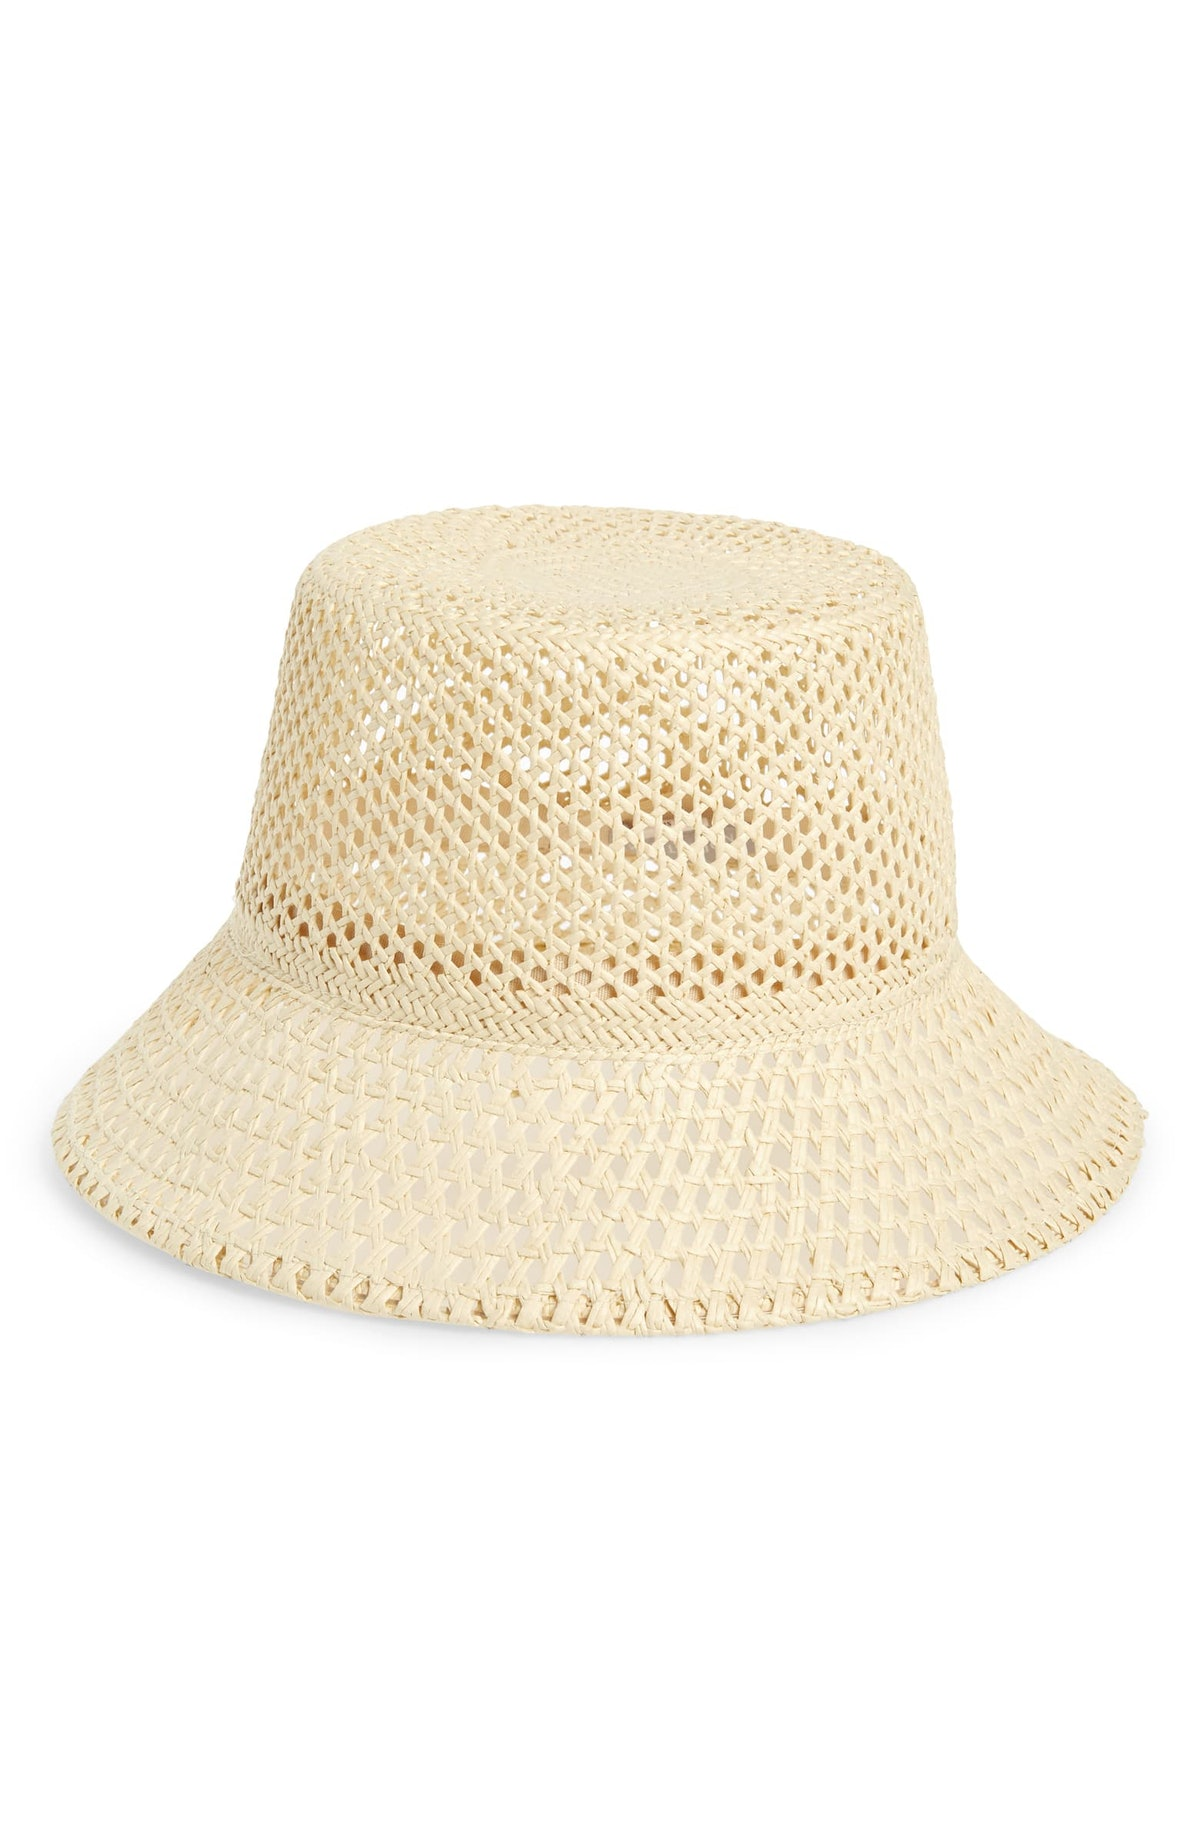 Weave Straw Bucket Hat, Main, color, NATURAL Open Weave Straw Bucket Hat